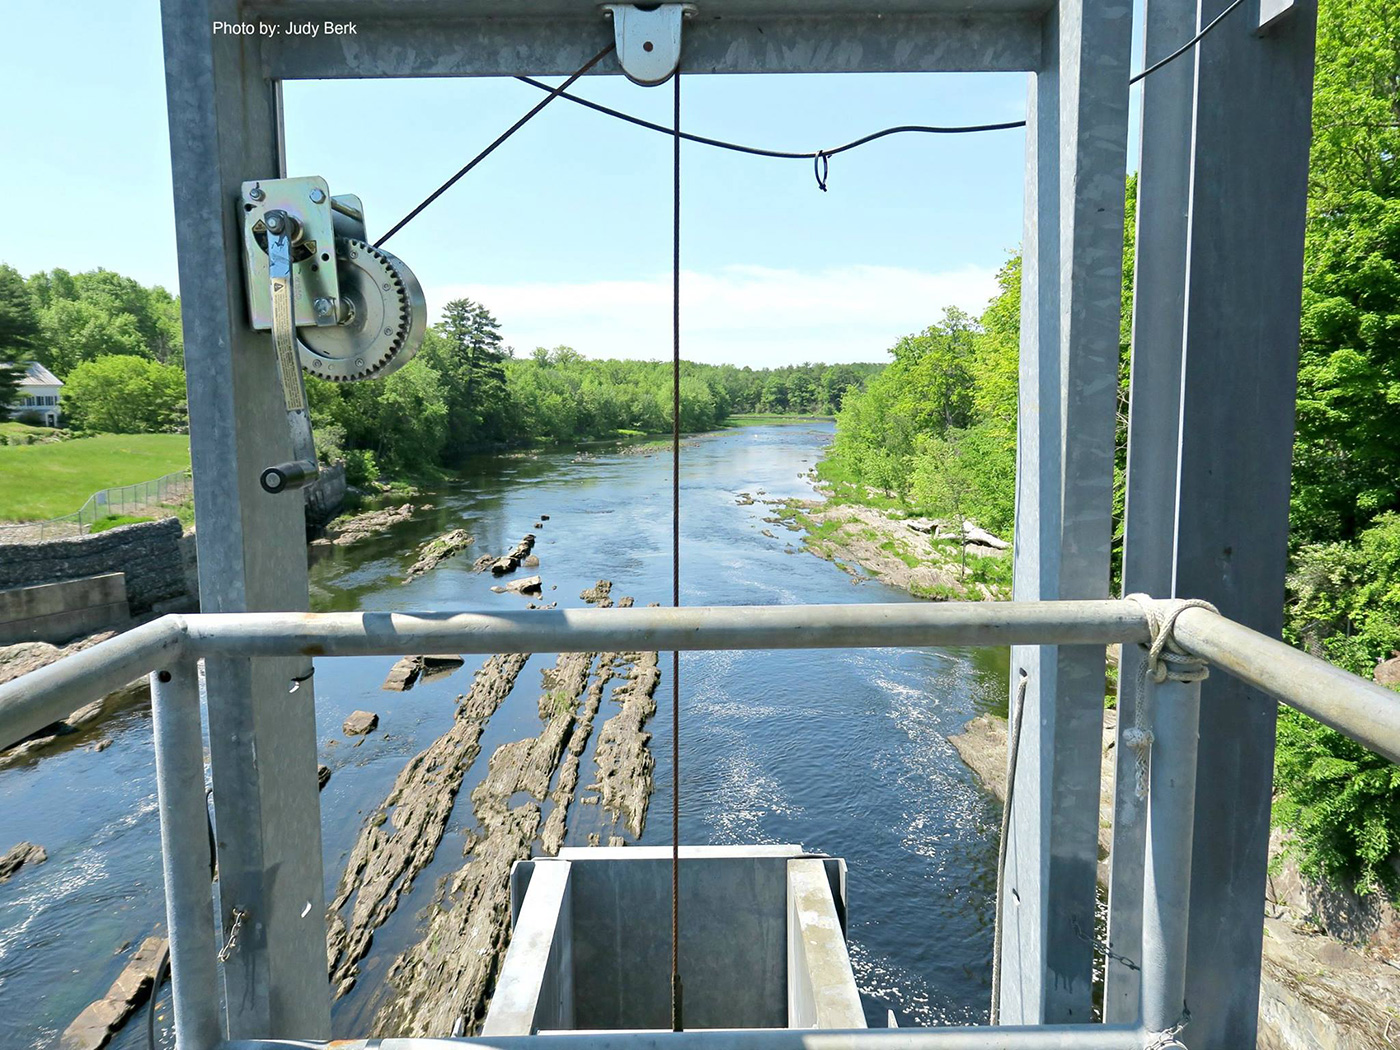 Fish elevator at Benton Falls. Photo by Judy Berk/NRCM